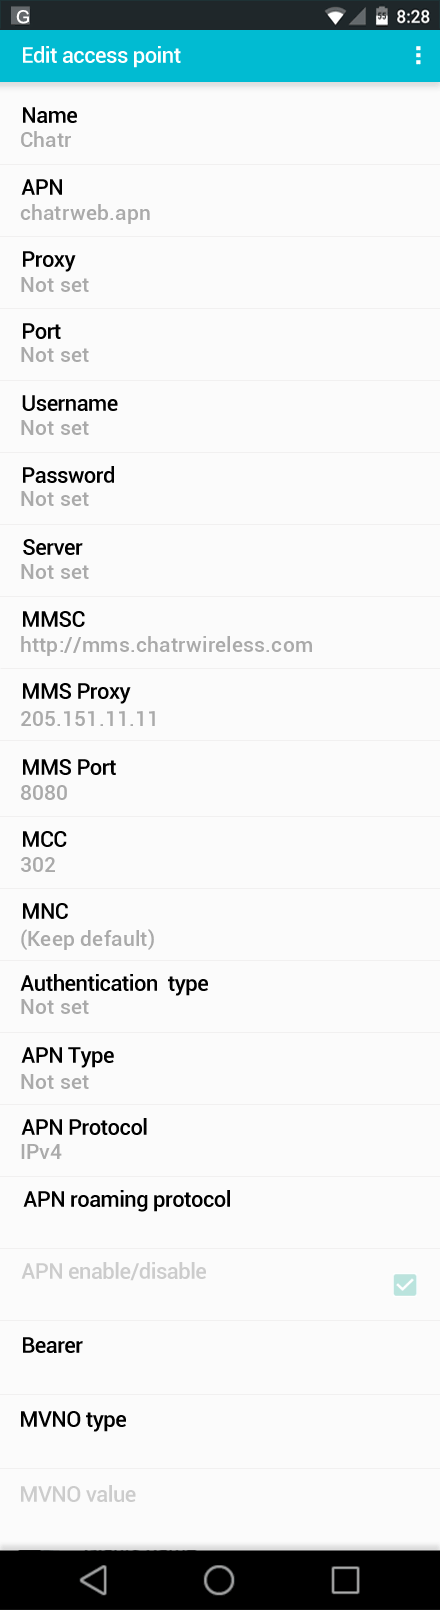 Chatr  APN settings for Android